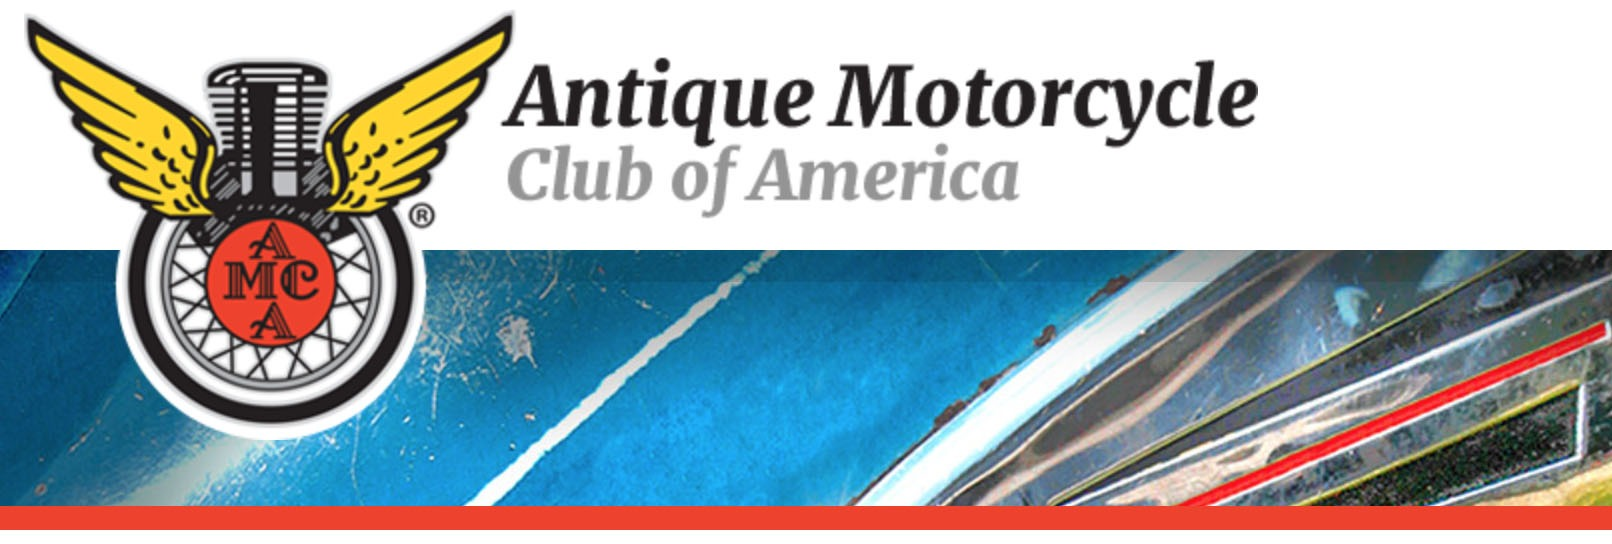 antique-motorcycle-club-of-america